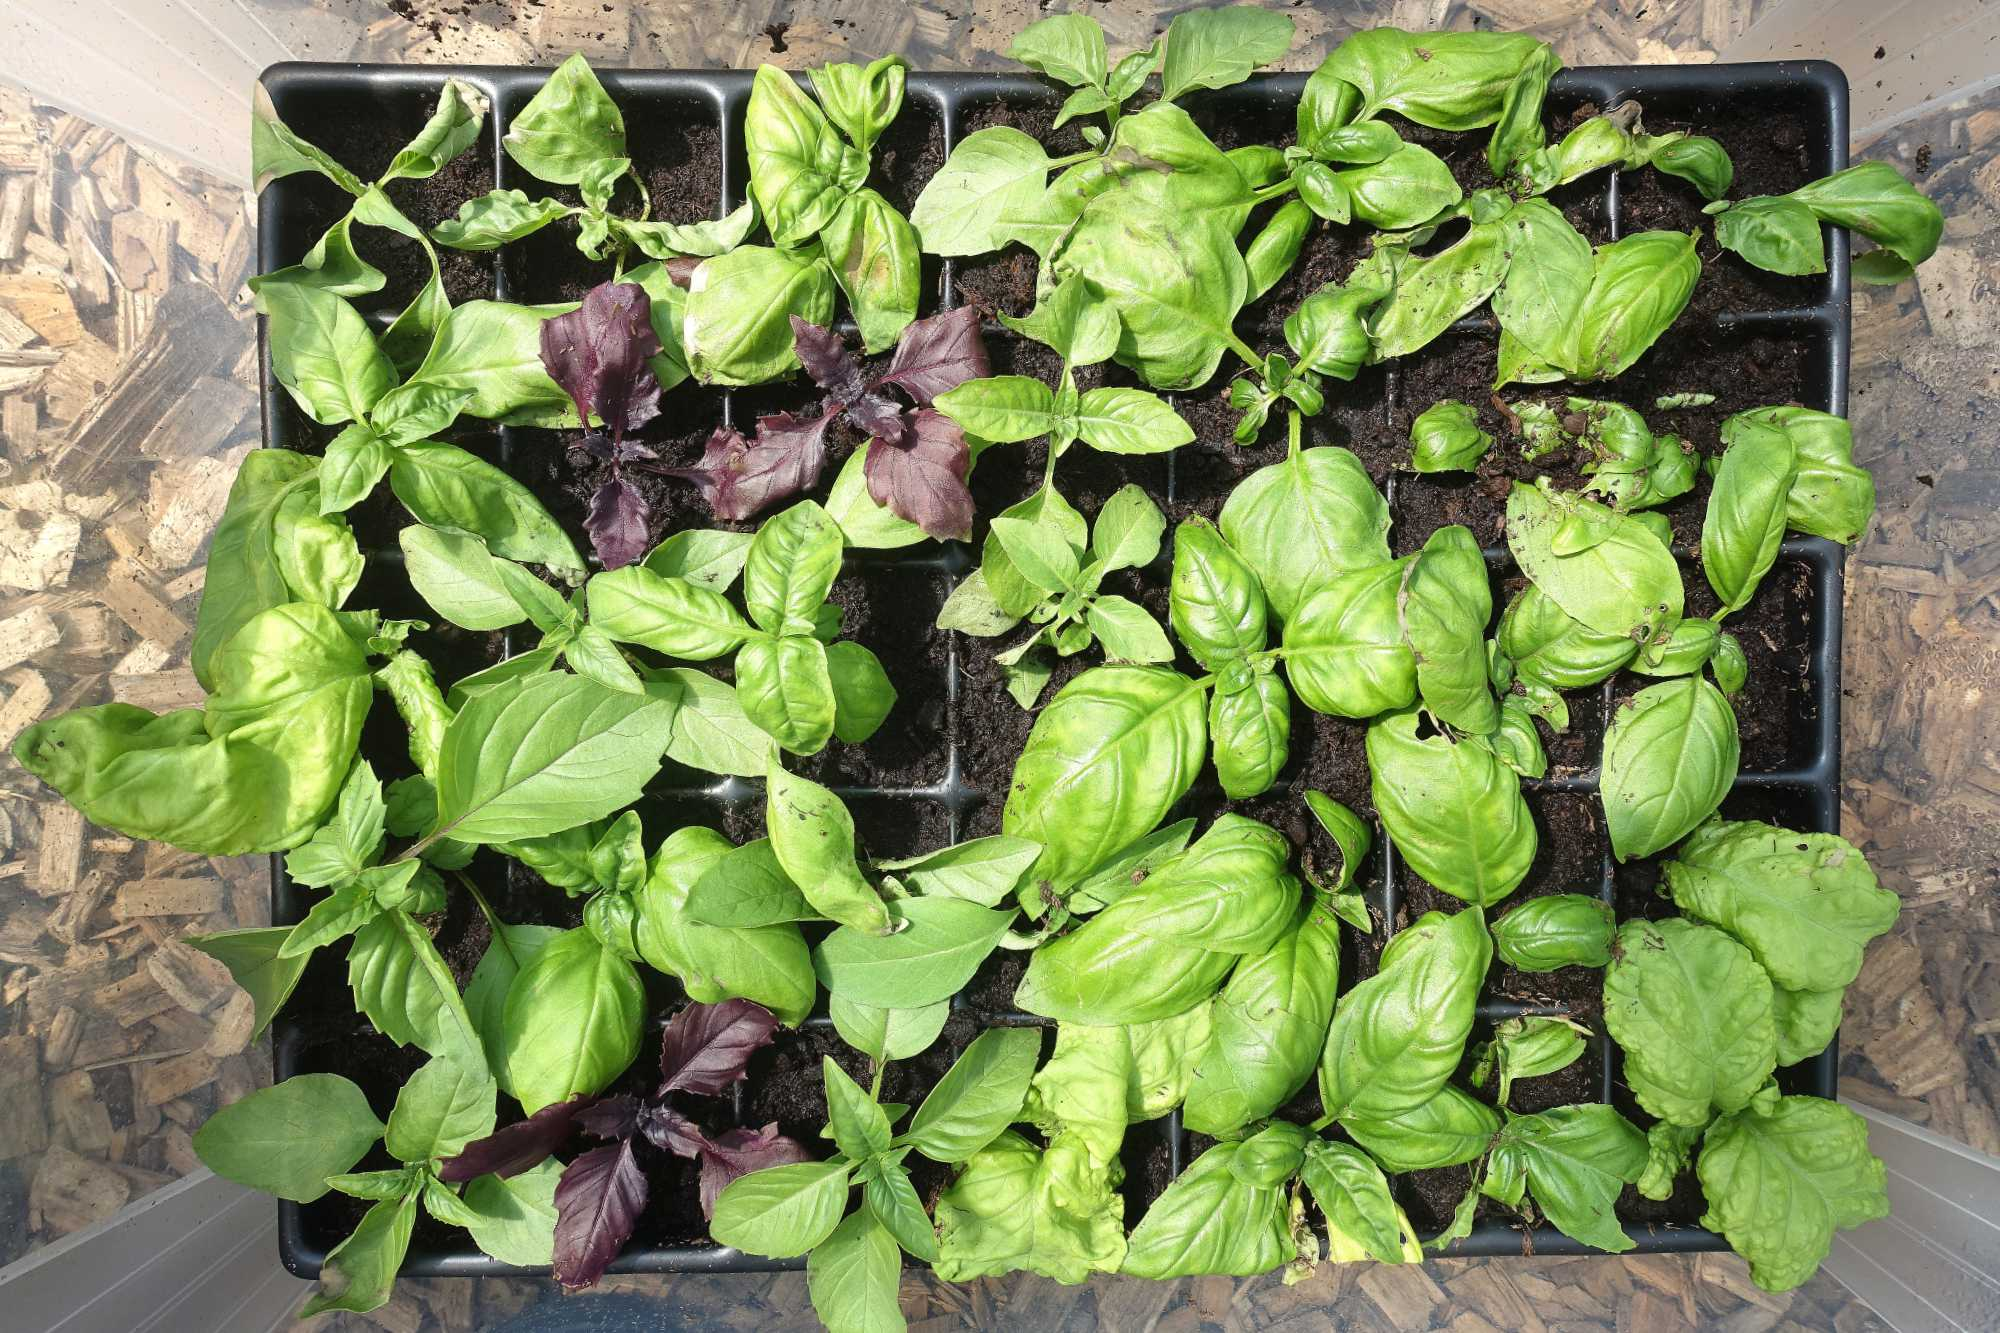 Plastback med sticklingar i. Plastic container with basil cuttings.